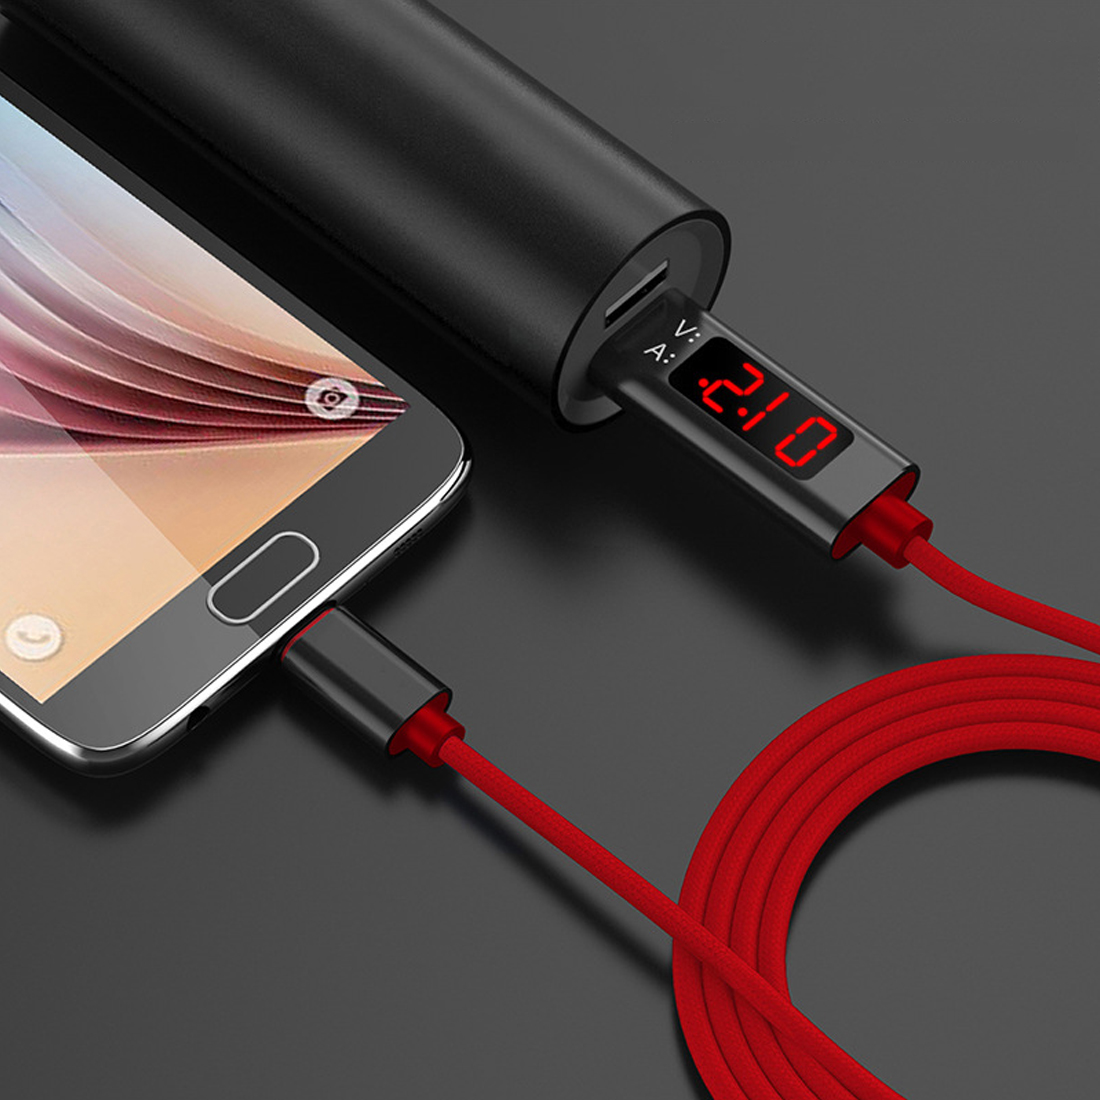 New USB For Type C Voltage Current Tester Meter Display Nylon Braided Fast Charging For Type-C Cable For Samsung S9/Android